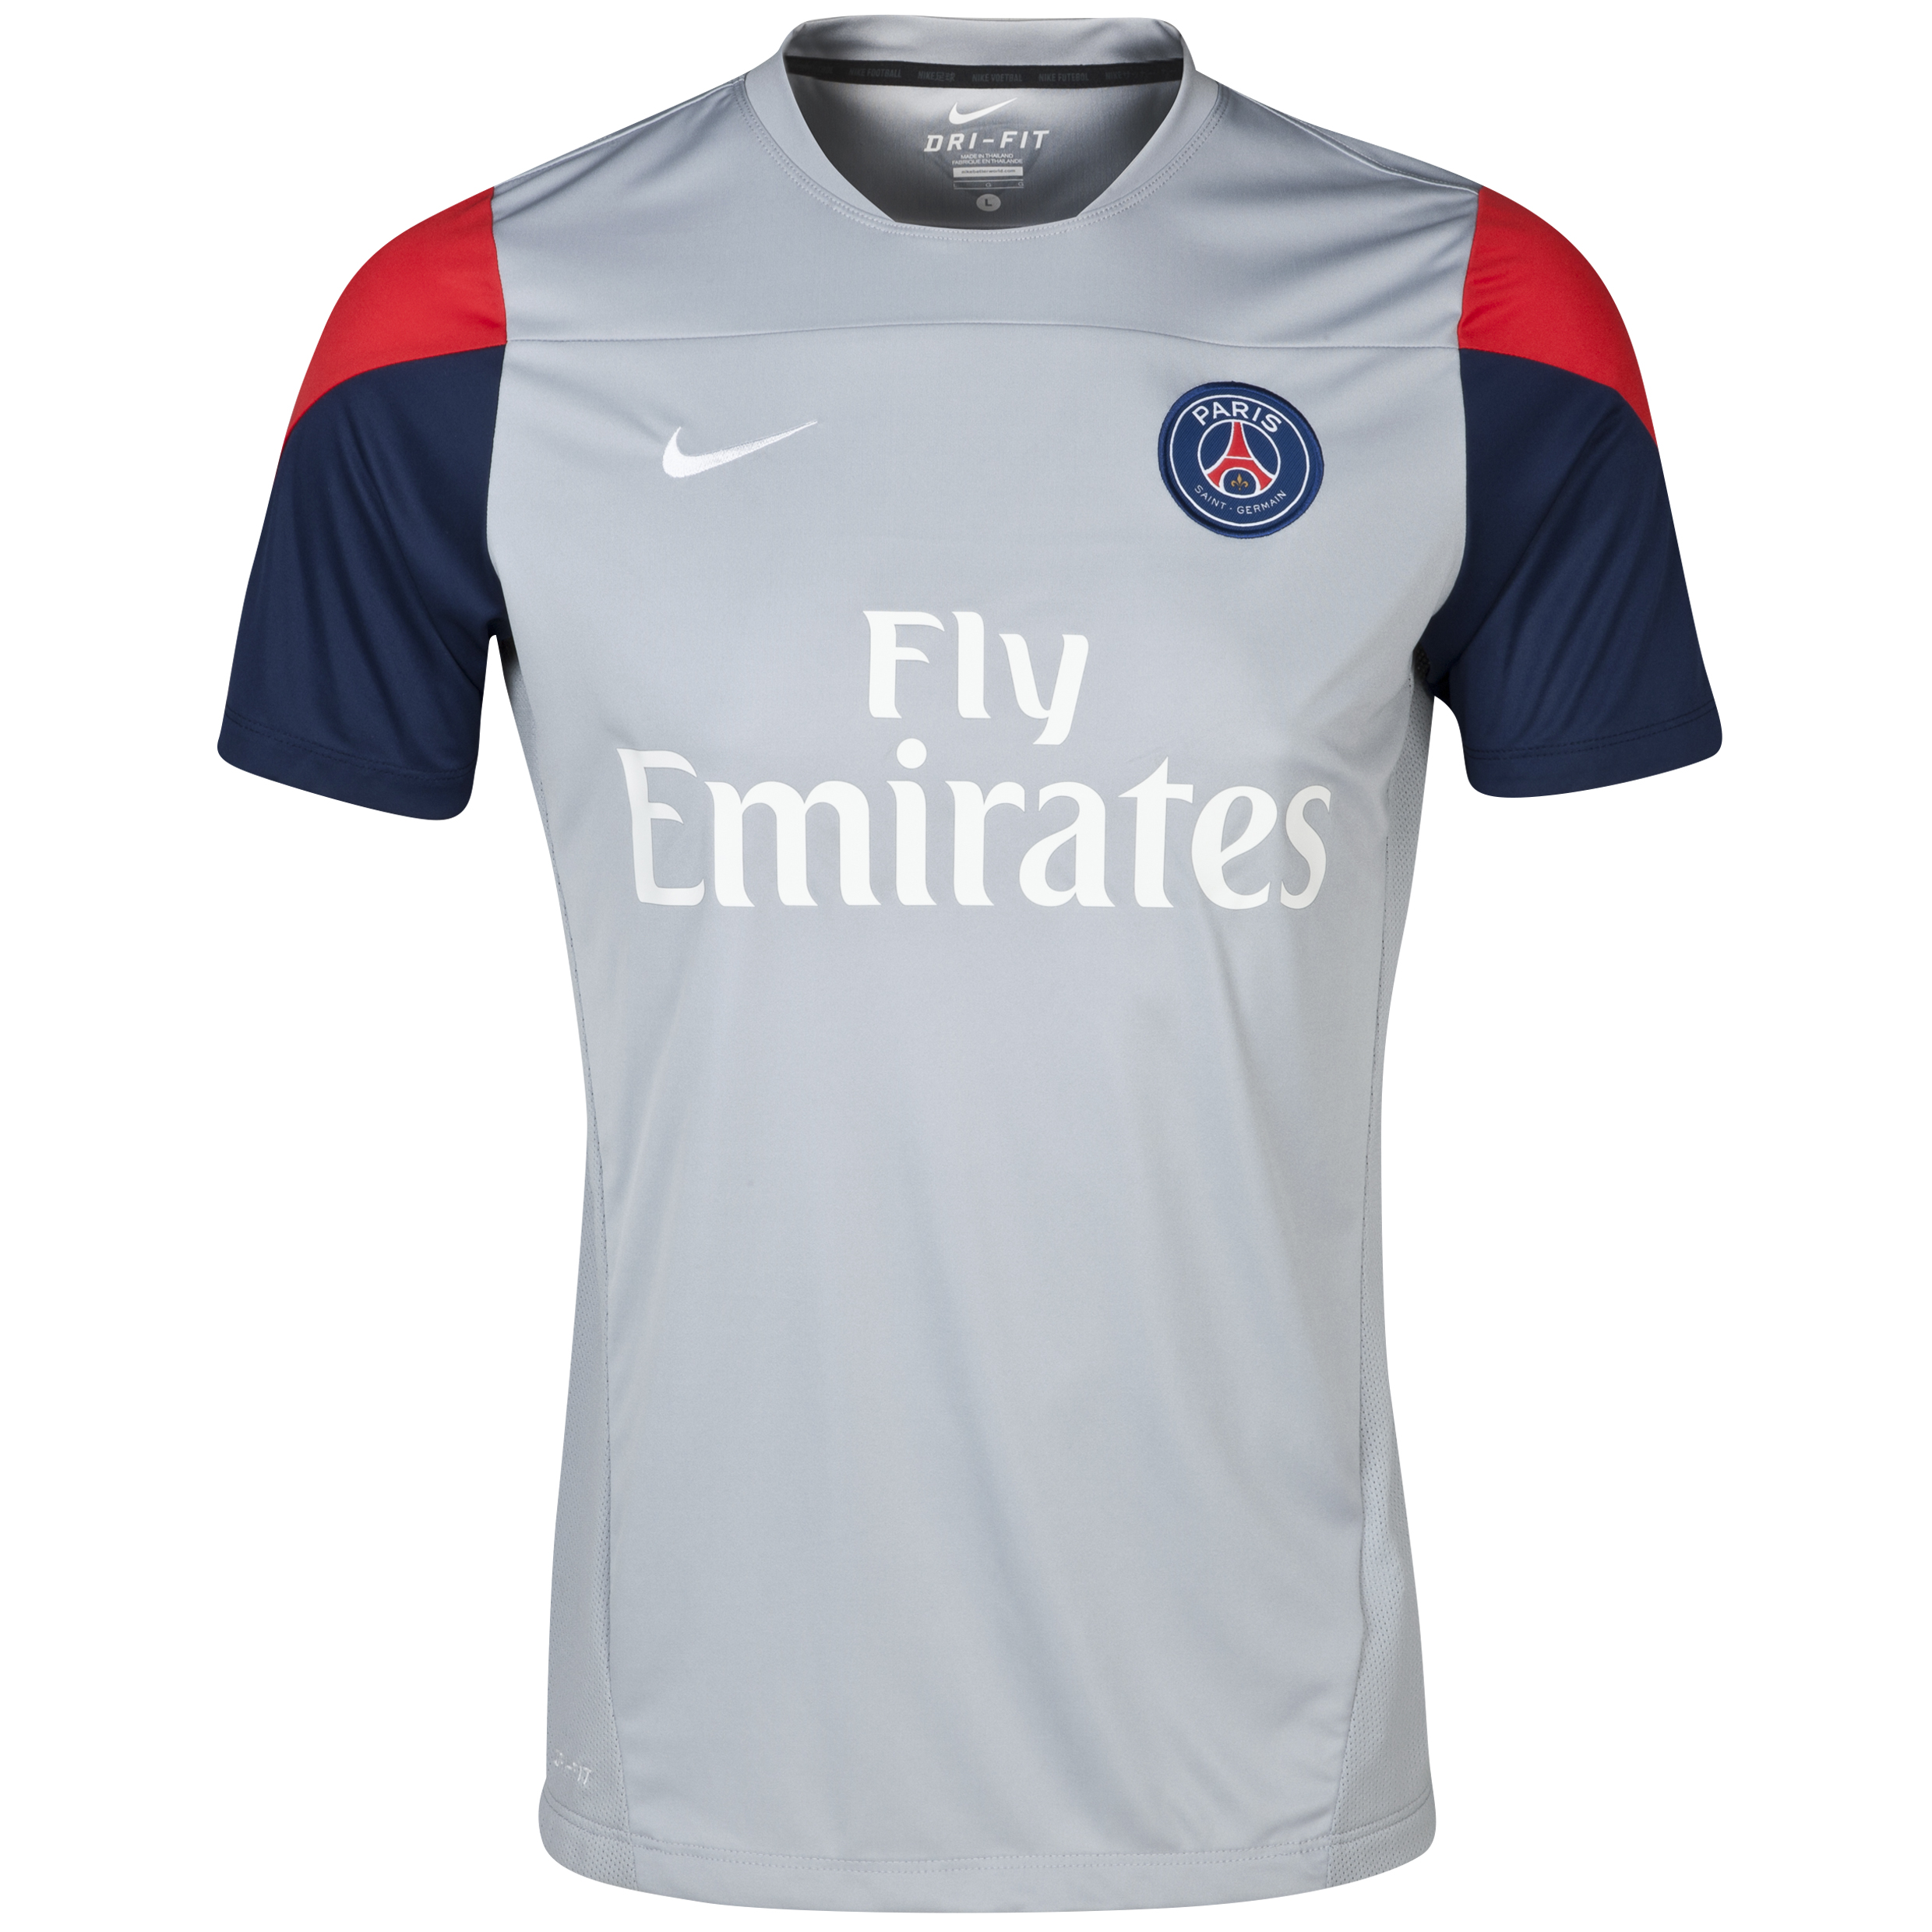 Paris Saint-Germain Squad Training Top - Wolf Grey/Midnight Navy/Challenge Red/White Grey